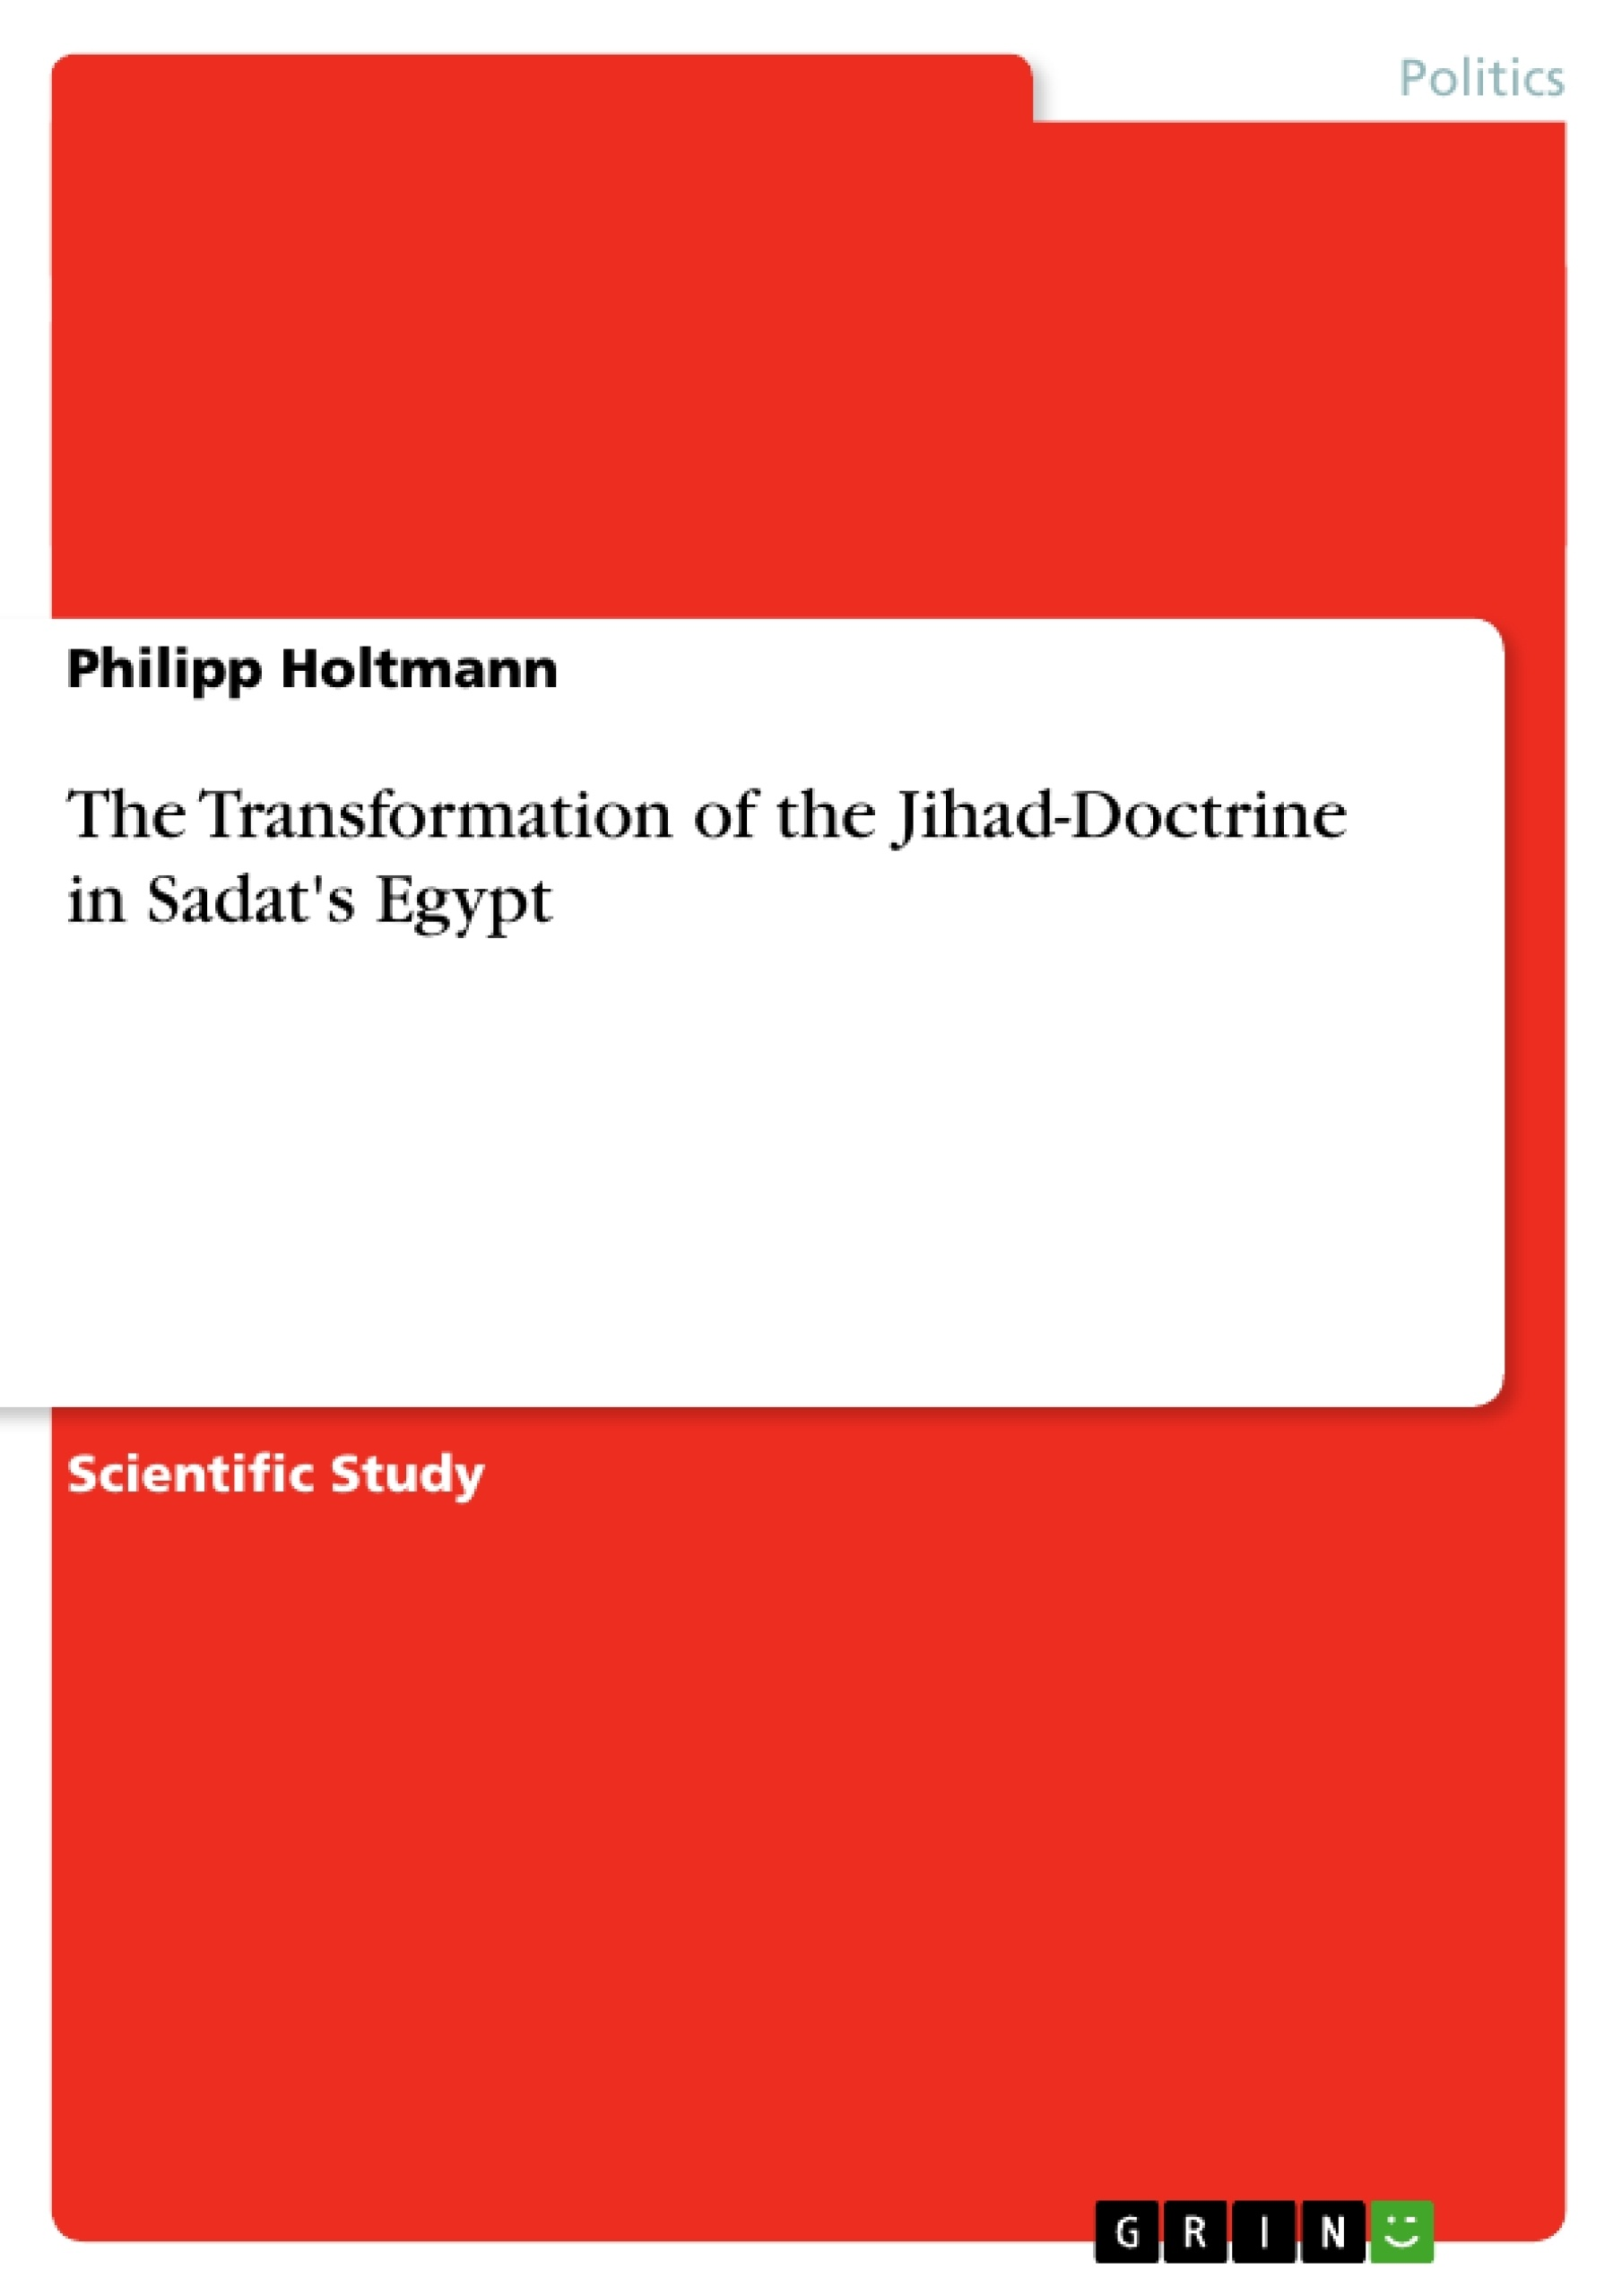 Title: The Transformation of the Jihad-Doctrine in Sadat's Egypt